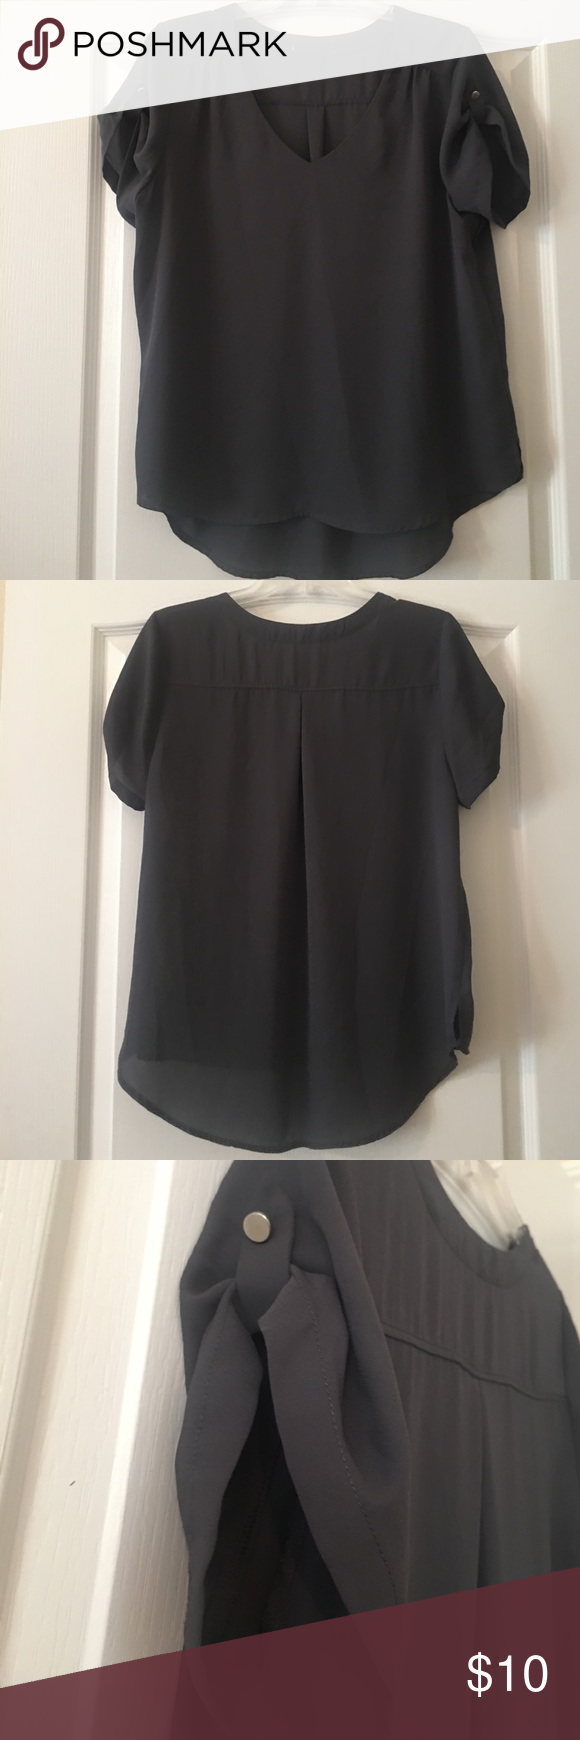 Grey blouse Flowy and flattering short sleeve grey shirt. Excellent condition. Has lovely embellishment on sleeves. Tops Blouses